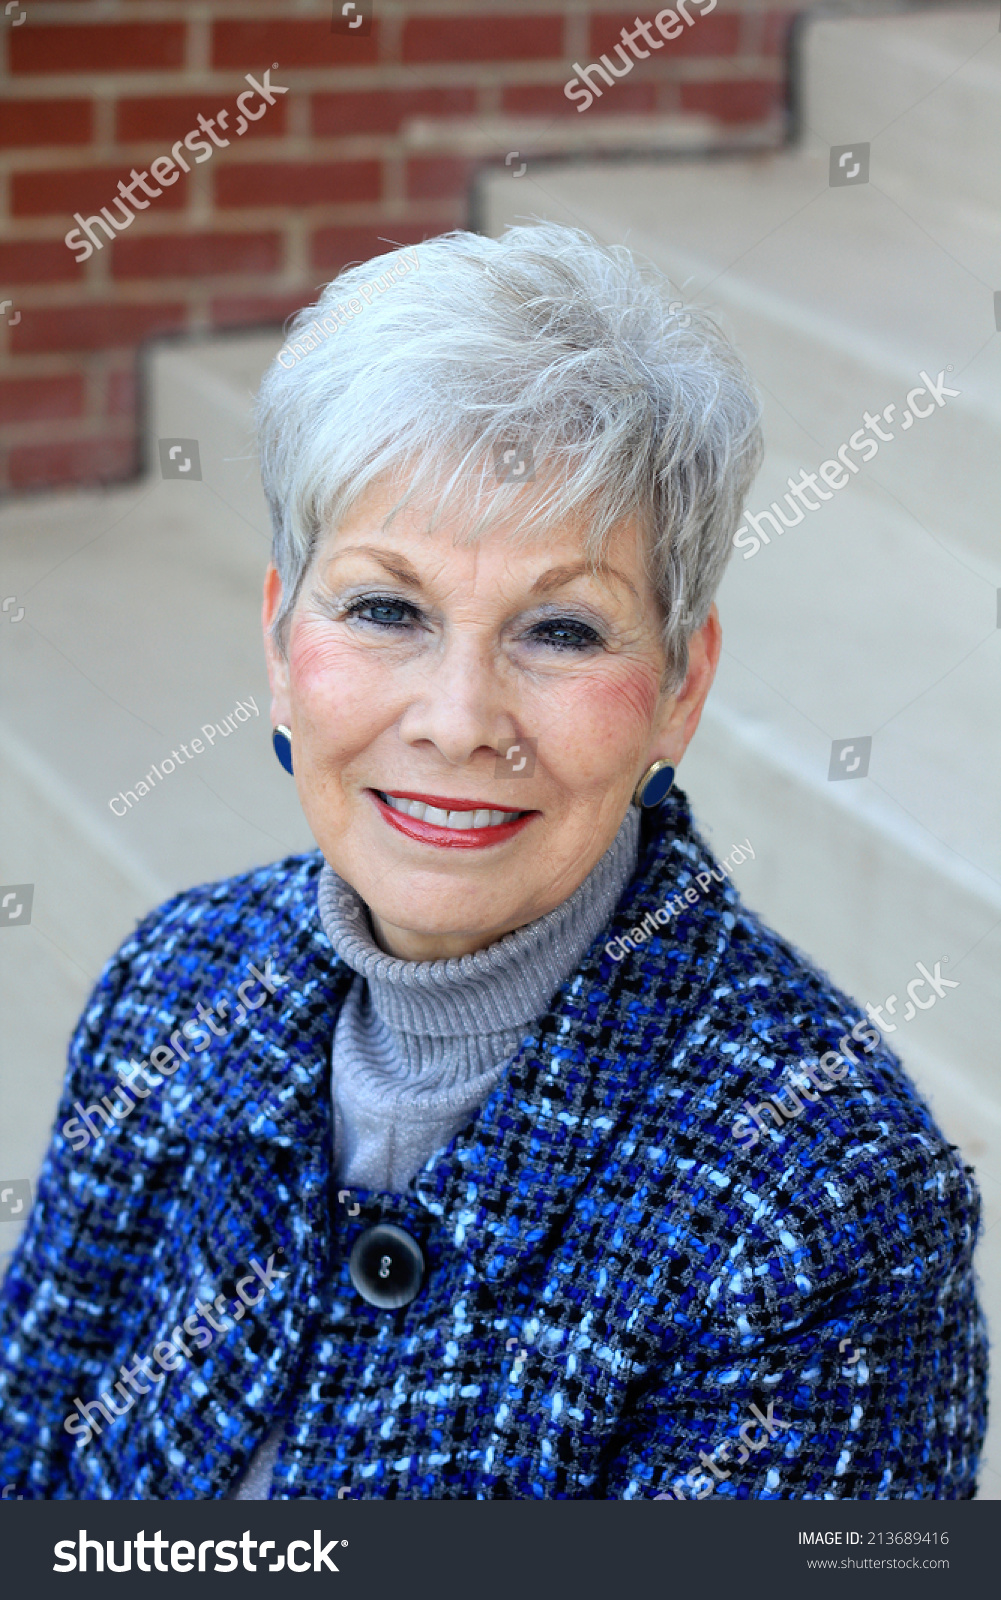 carefree senior singles Looking for singles in carefree, az find a date today at idating4youcom local dating site register now, use it for free for speed dating.